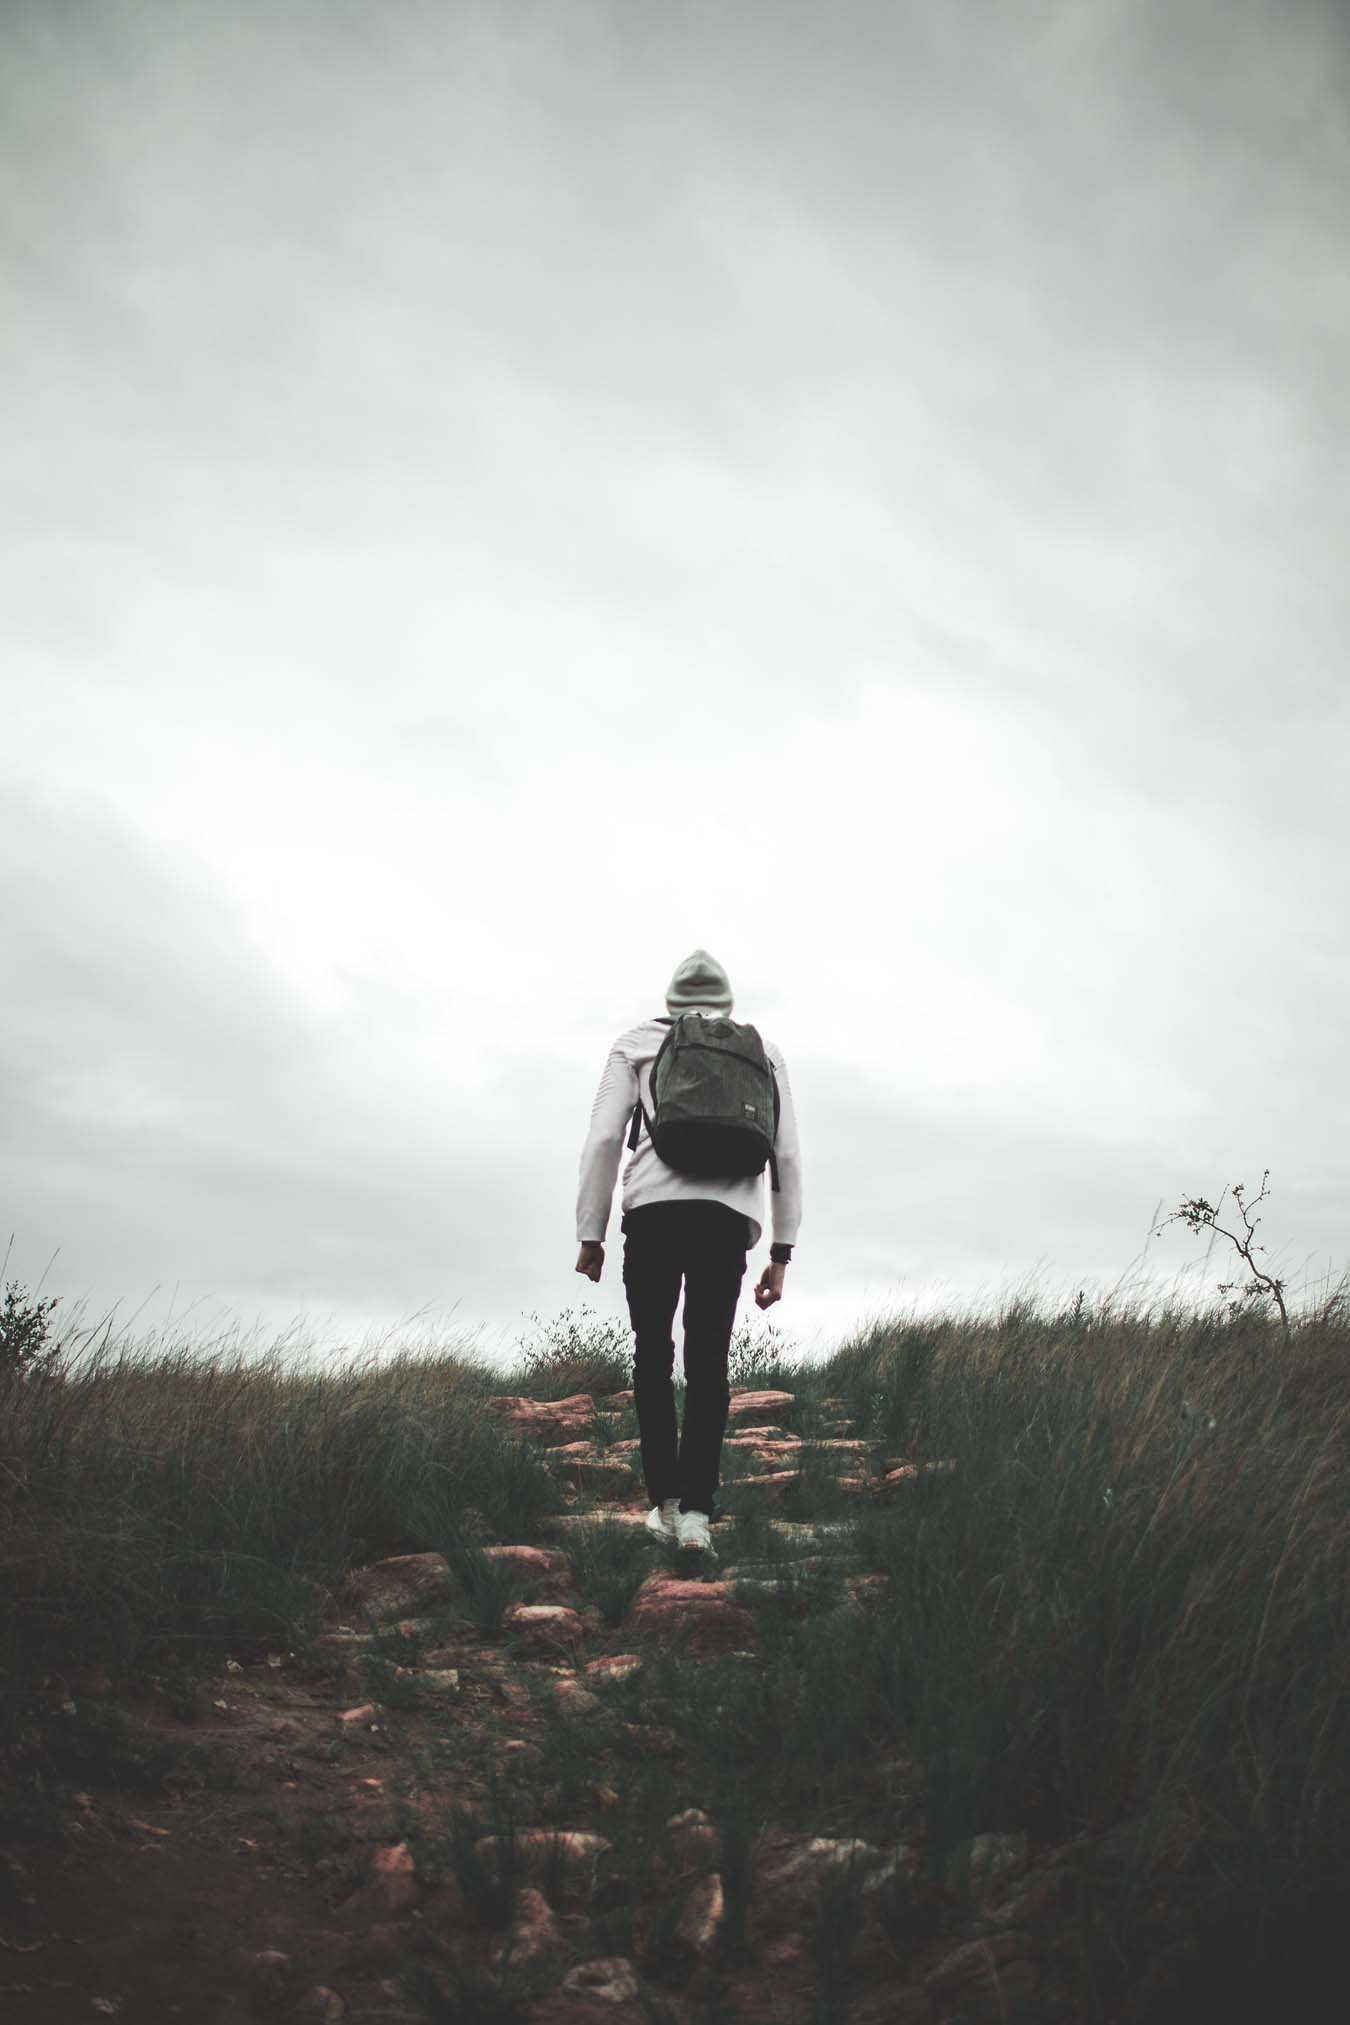 A person with a backpack and a hood is walking up a stony path.